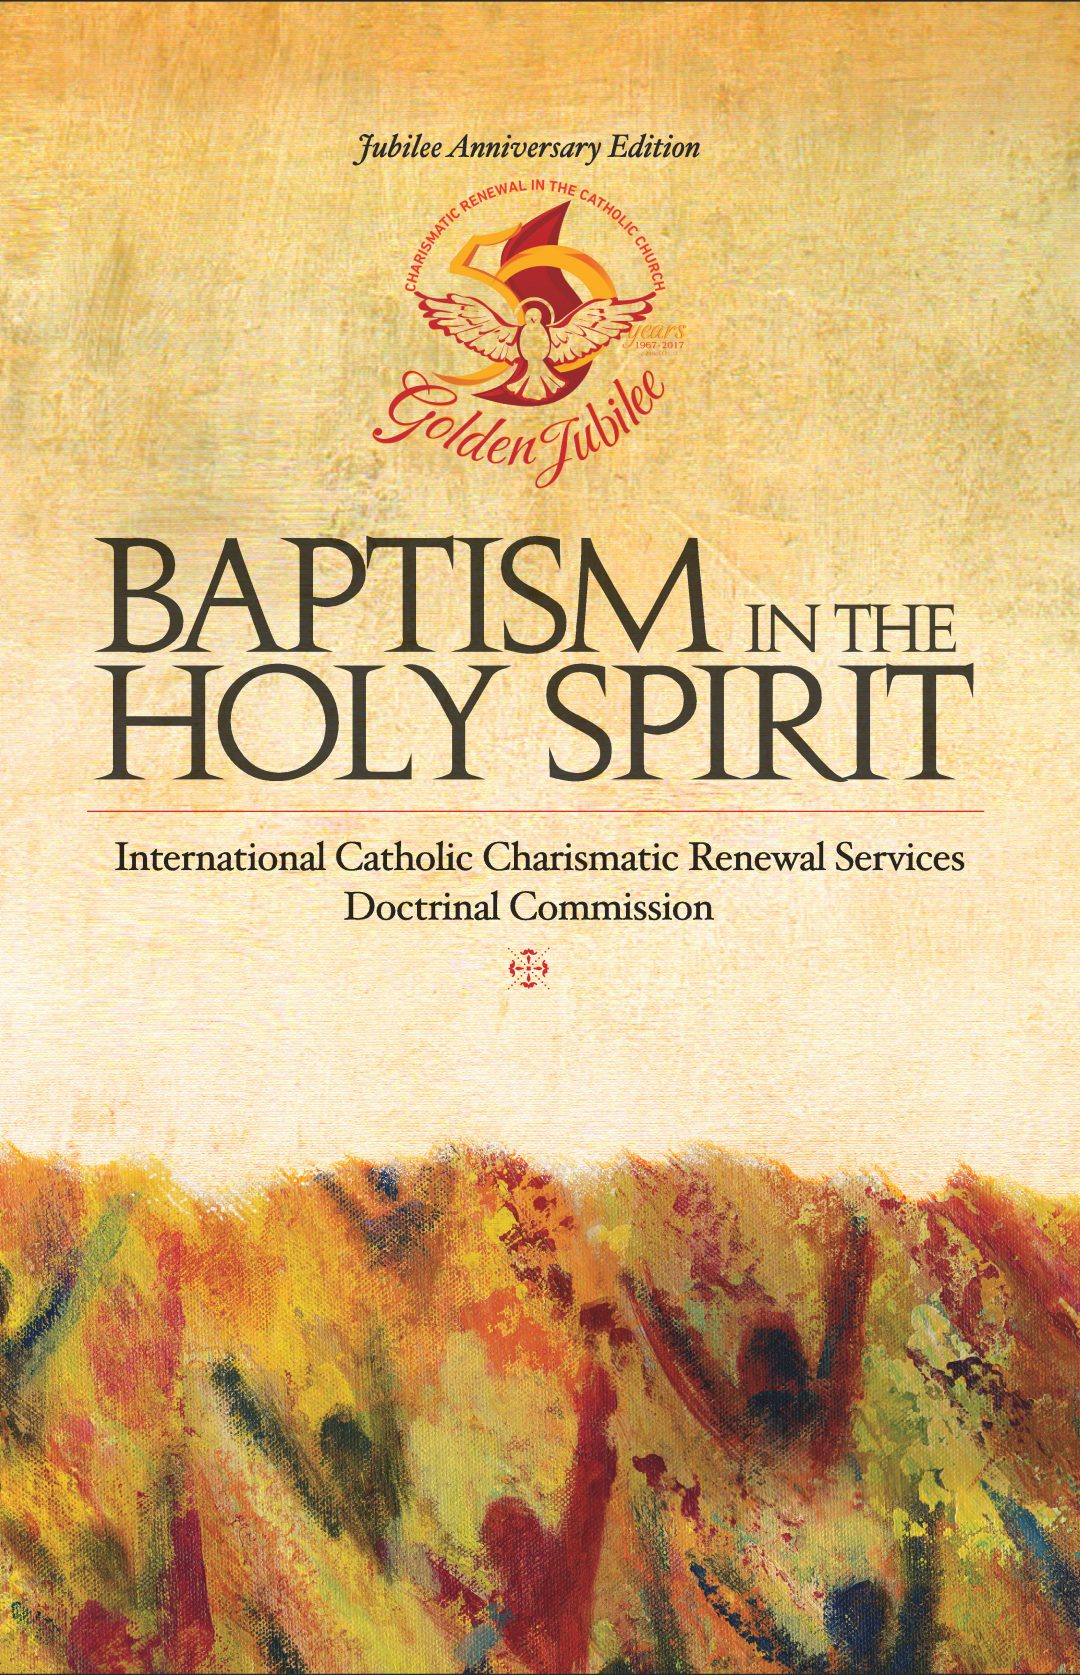 Baptism in the Holy Spirit: 50th Jubilee Anniversary Edition